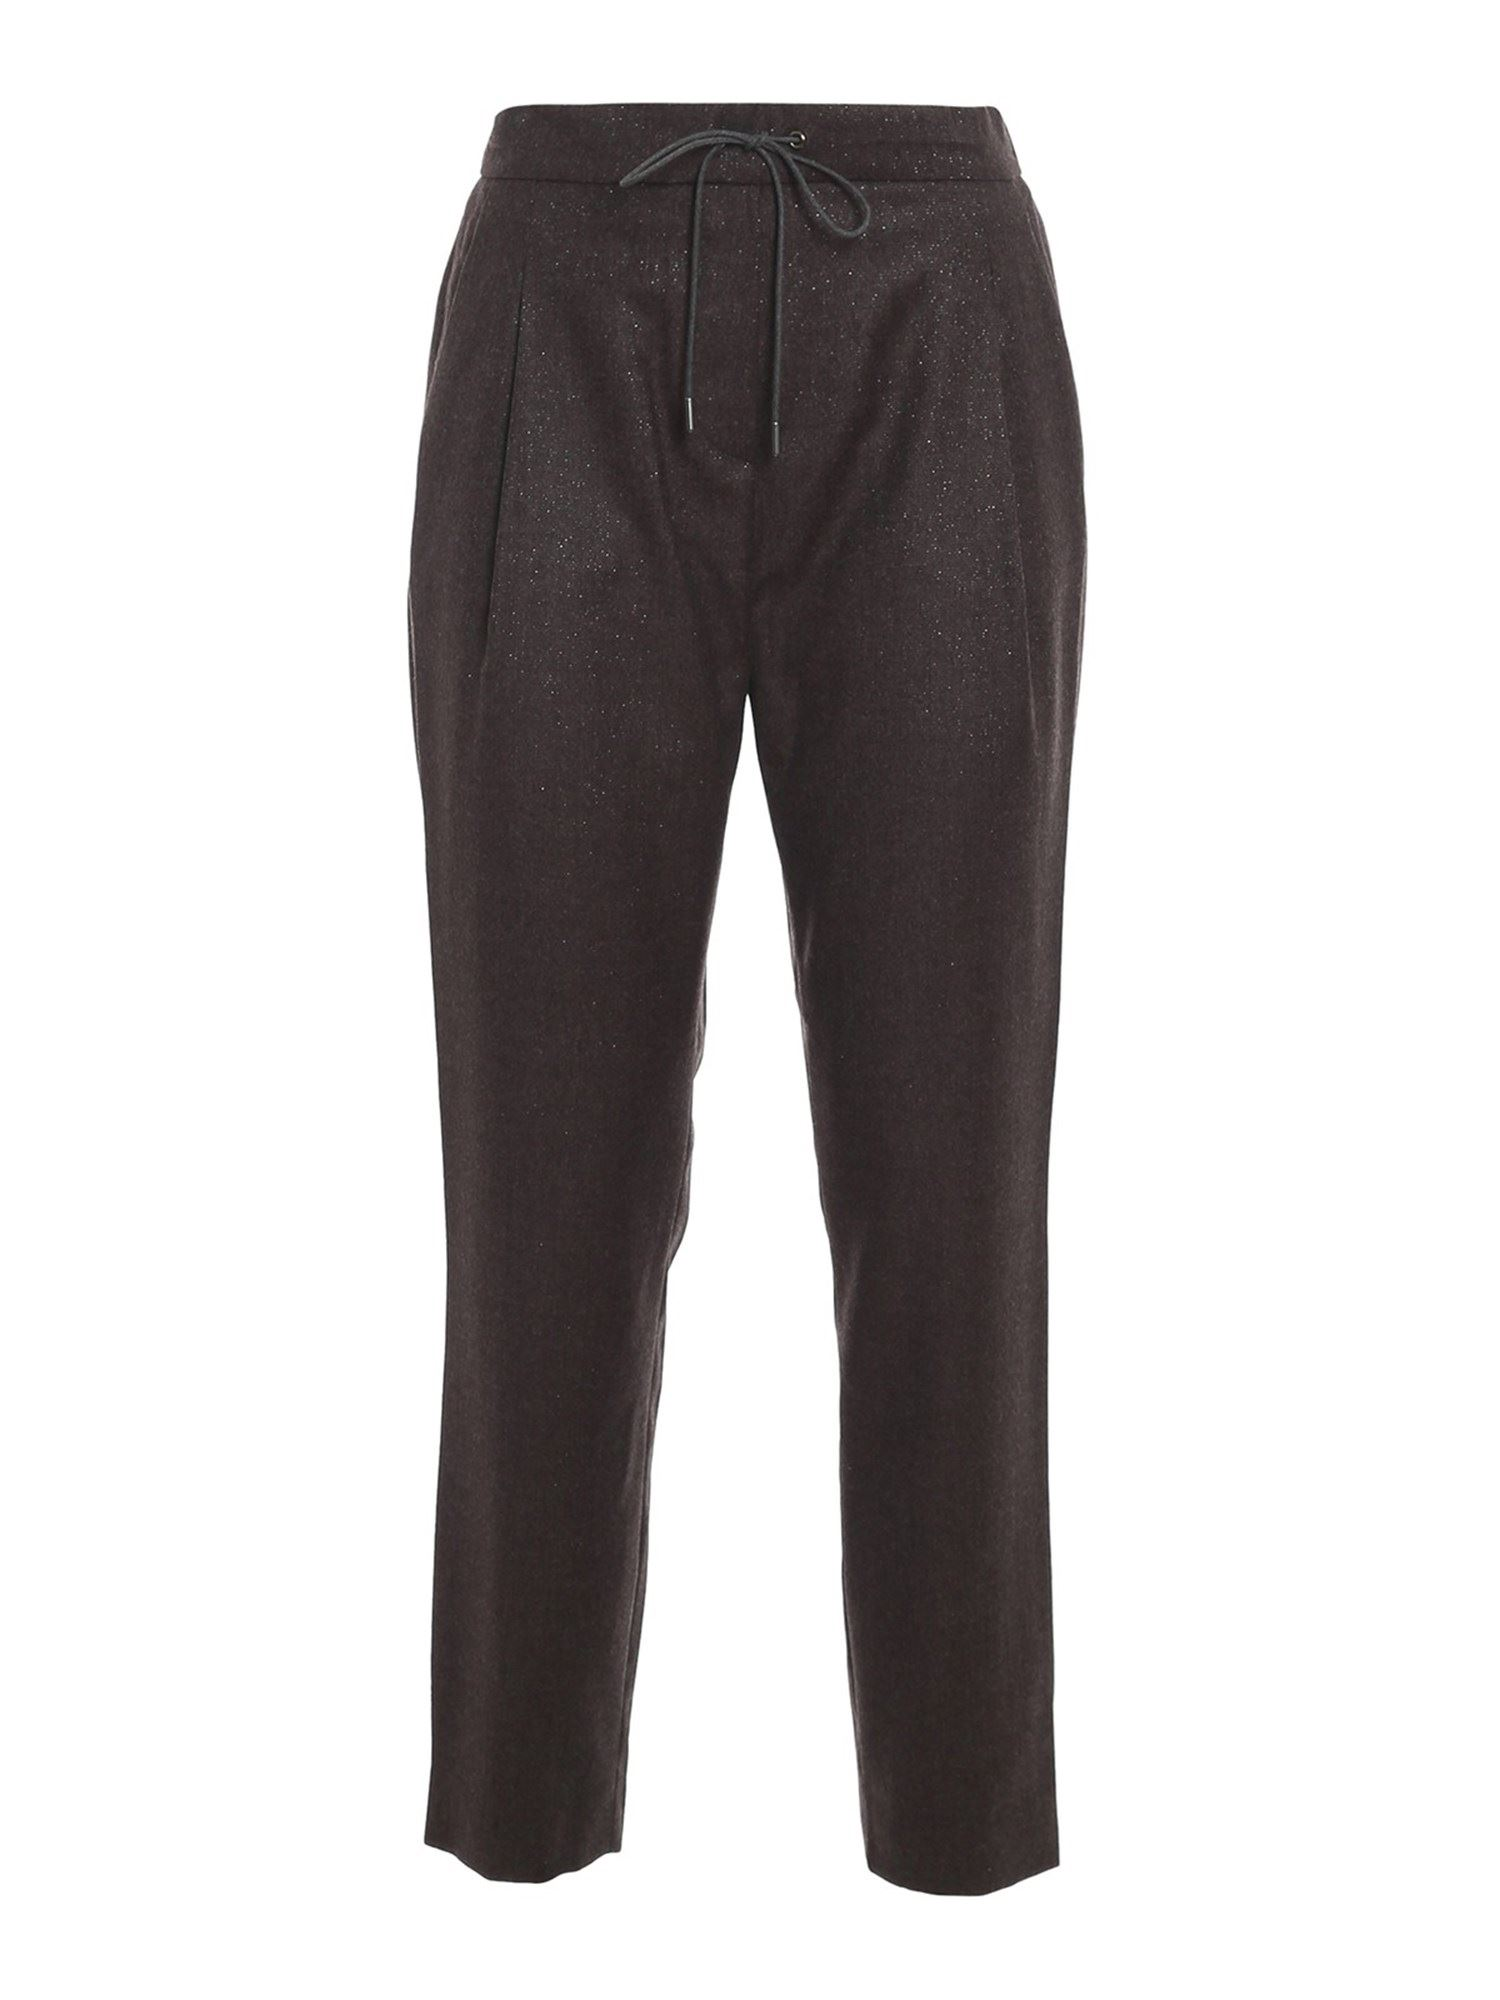 Fabiana Filippi Wool-blend Trousers With Drawsting At Waist In Brown